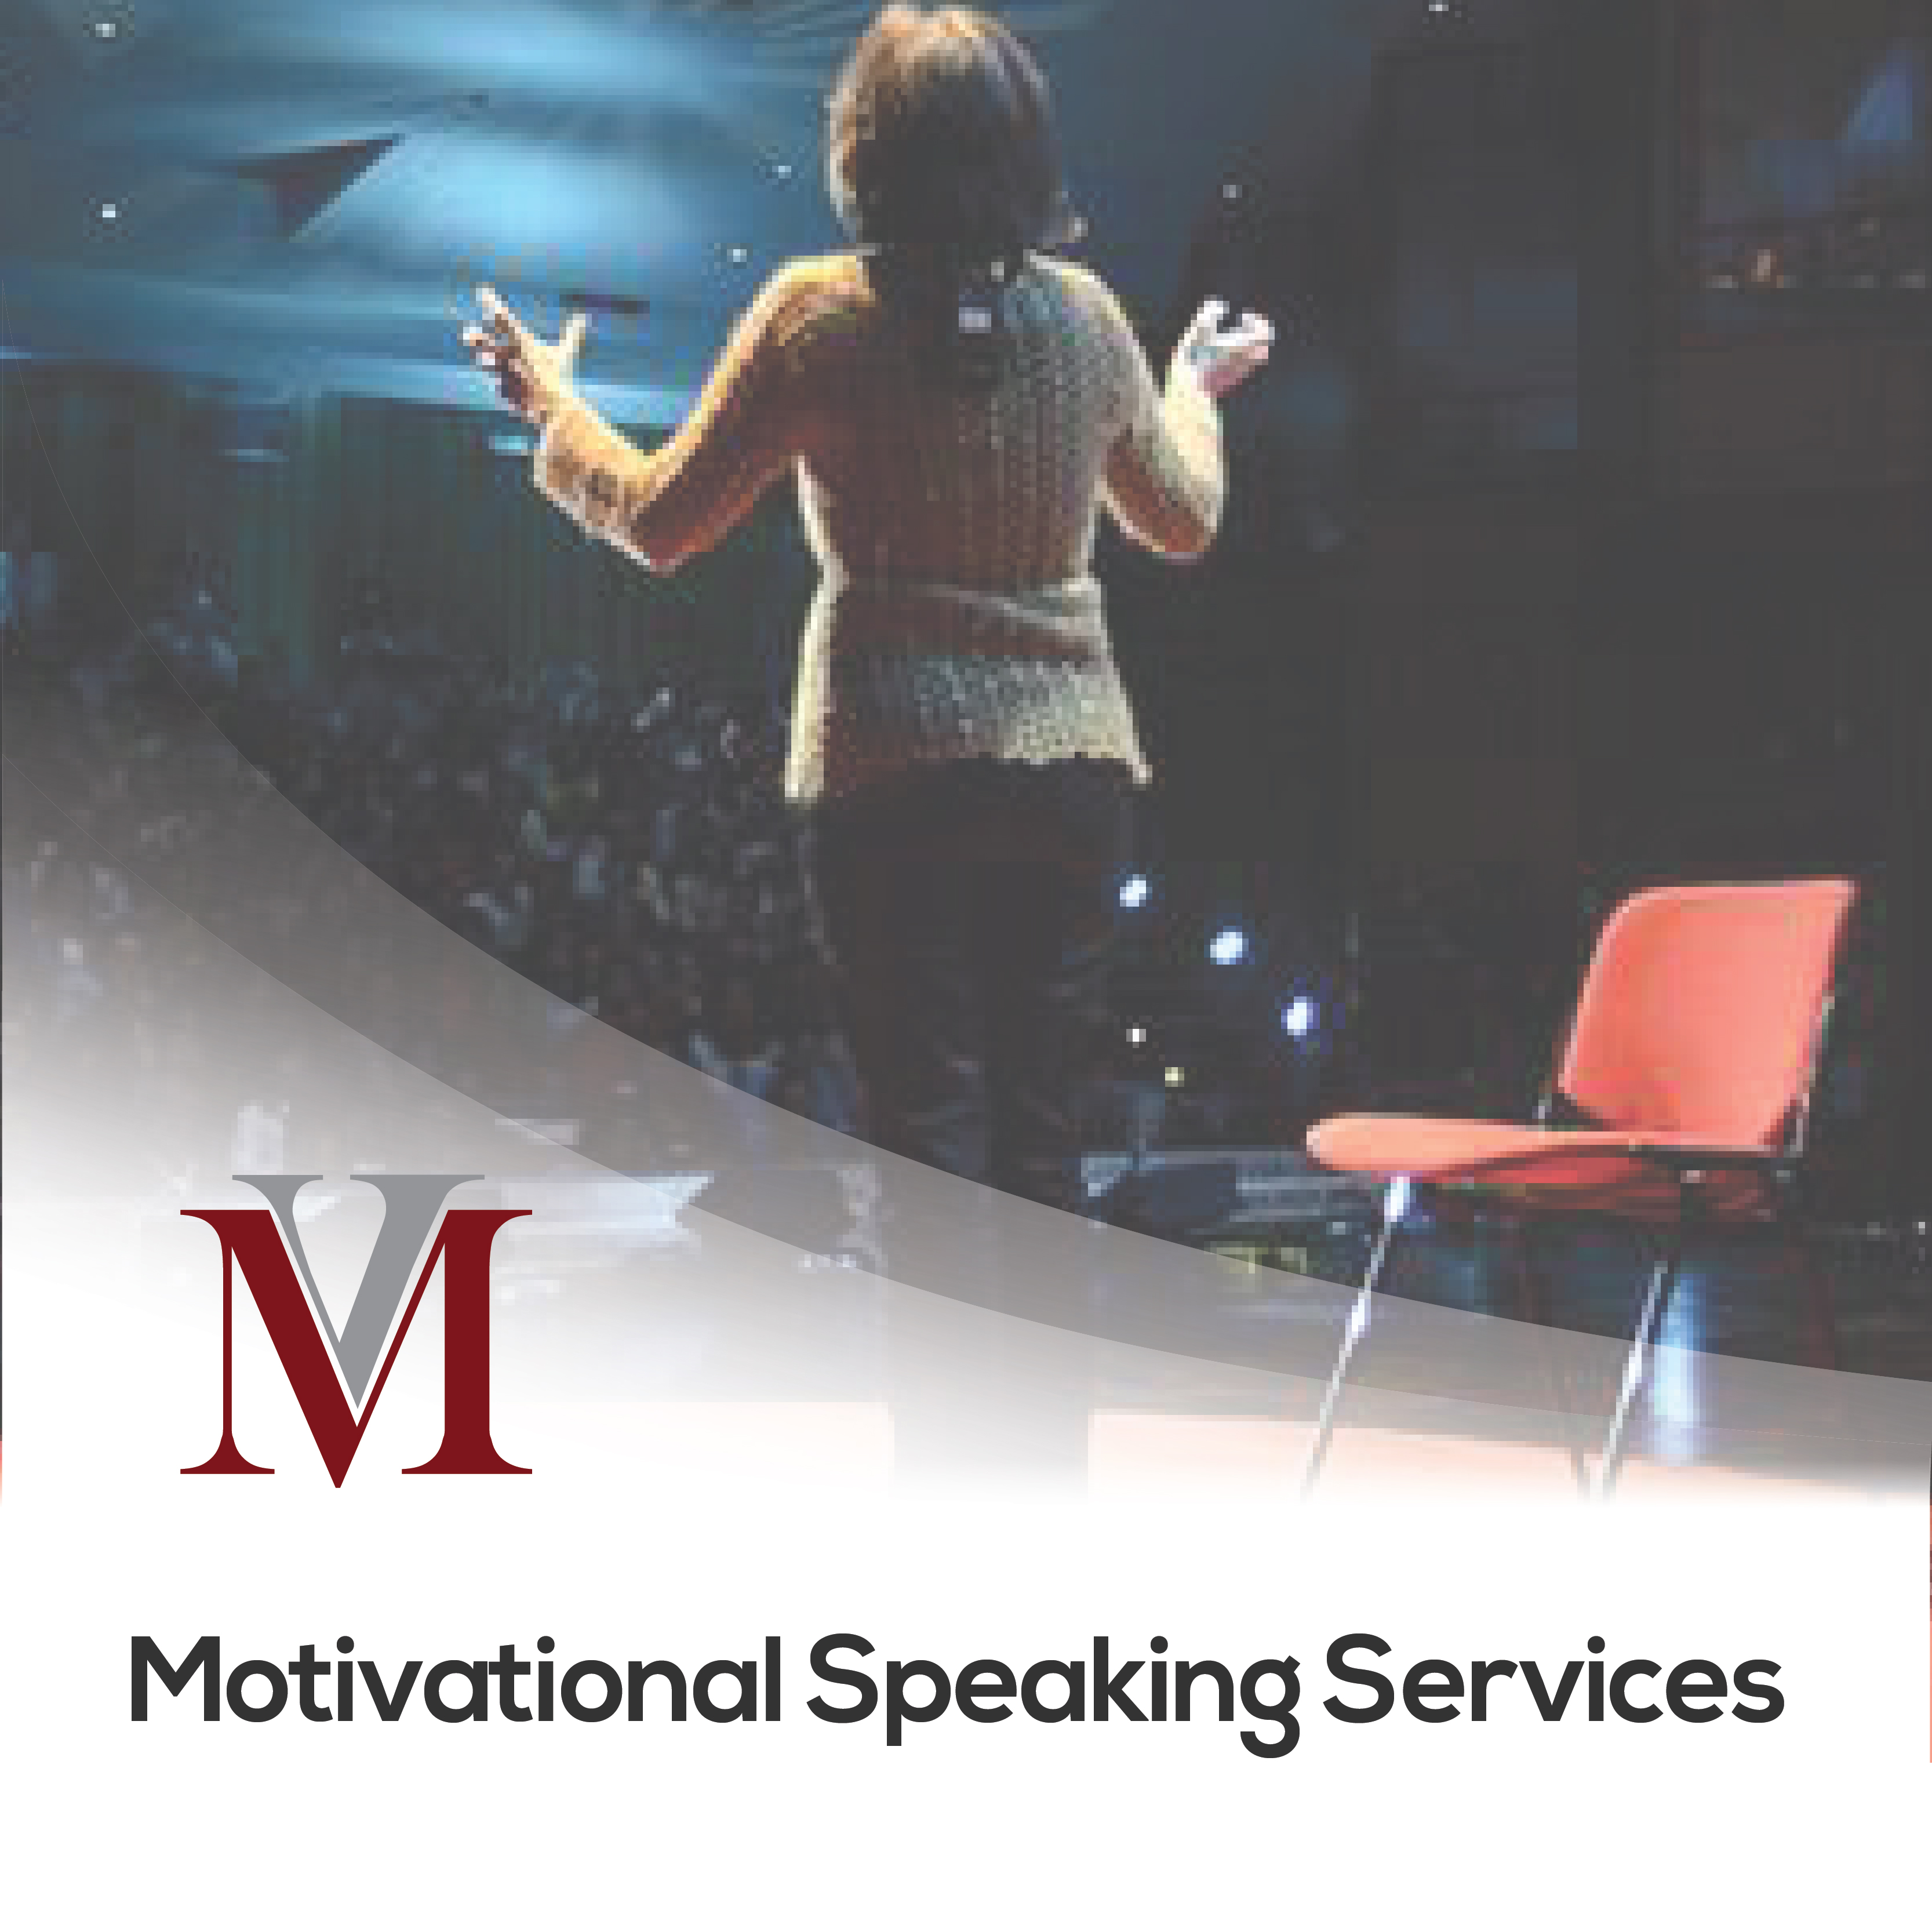 Motivational Speaking Services